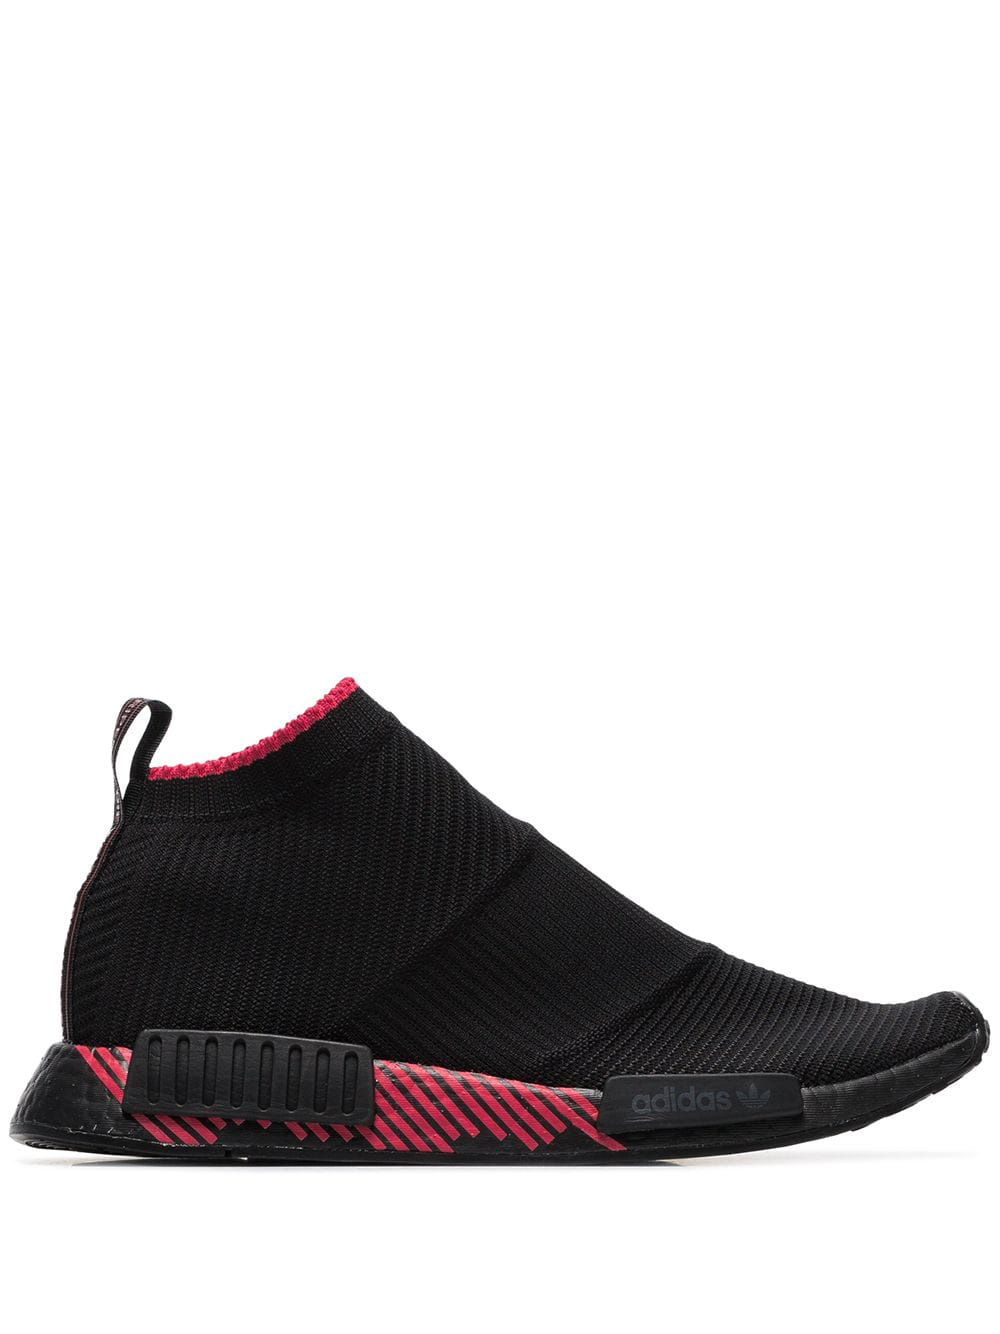 2c90c782427db Adidas Originals Adidas Black And Red Nmd Racer Solar Sneakers ...